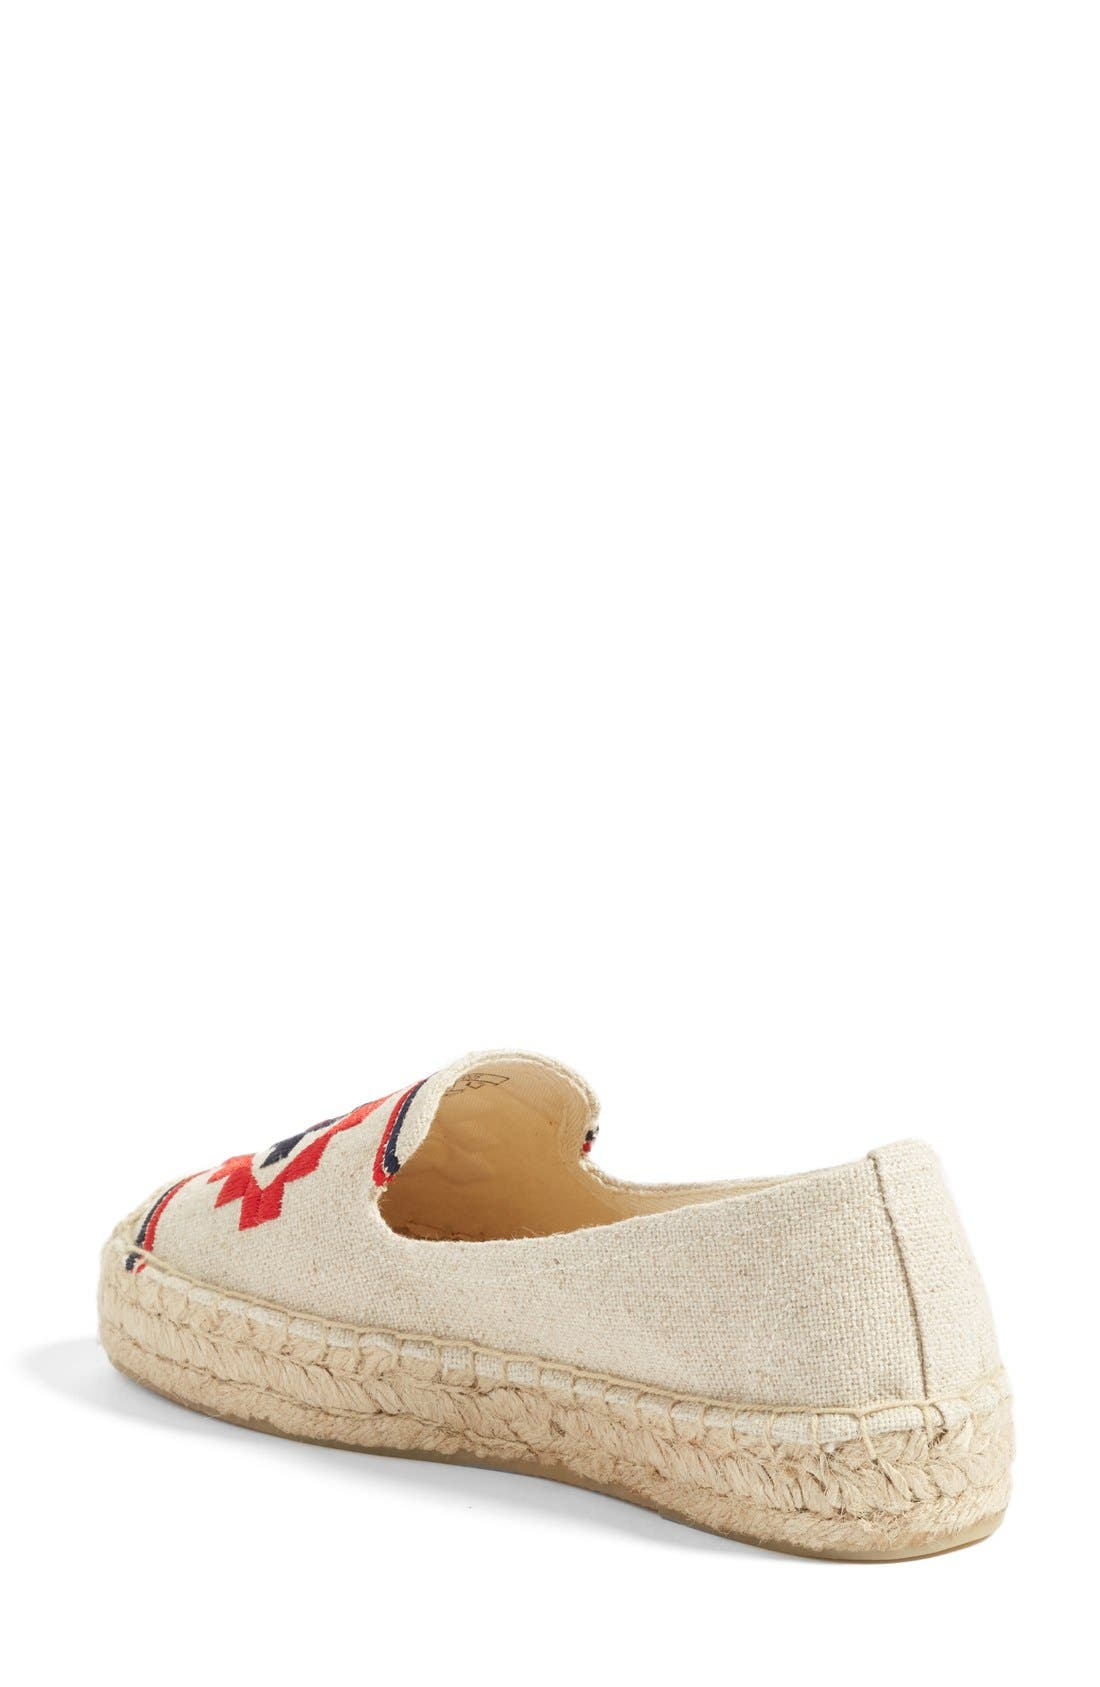 Embroidered Espadrille,                             Alternate thumbnail 2, color,                             270